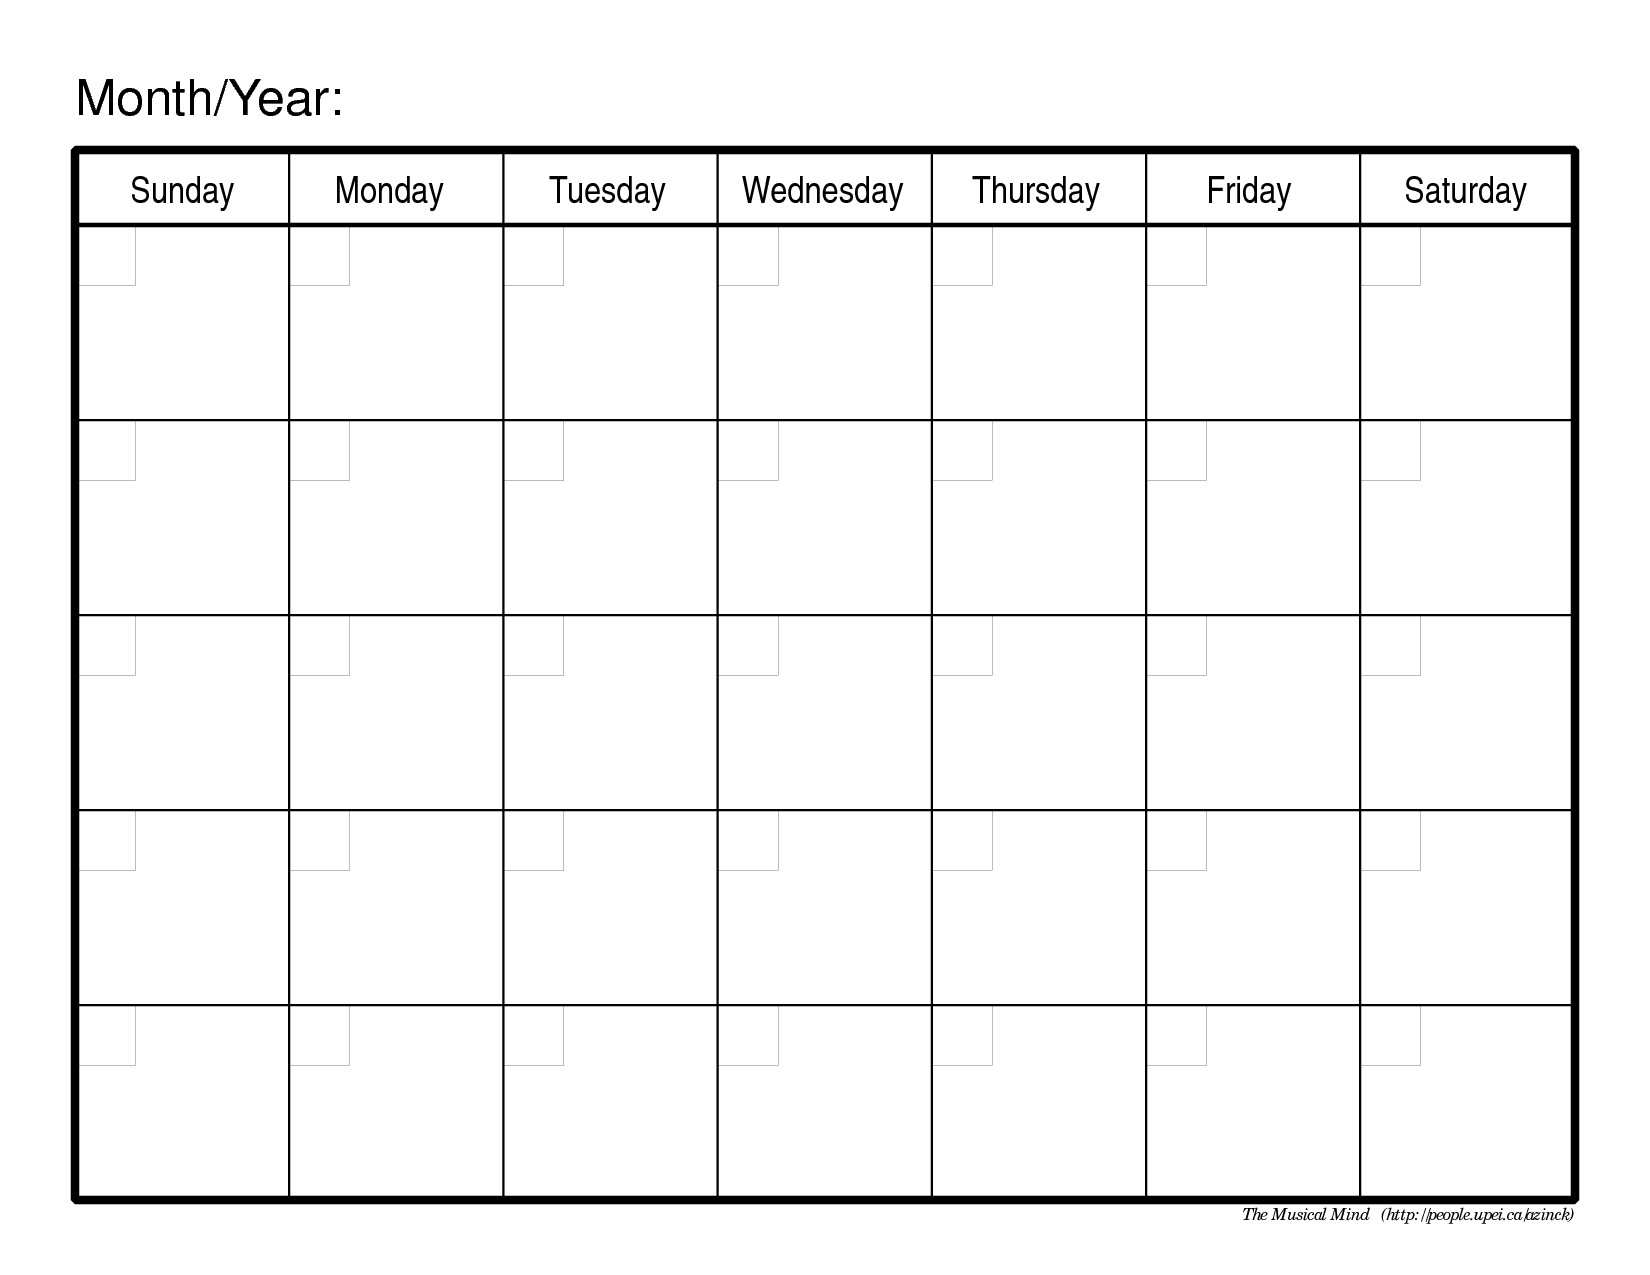 Monthly Calendar Template | Organizing | Monthly Calendar Template regarding Free Printable Calendar Templates Month